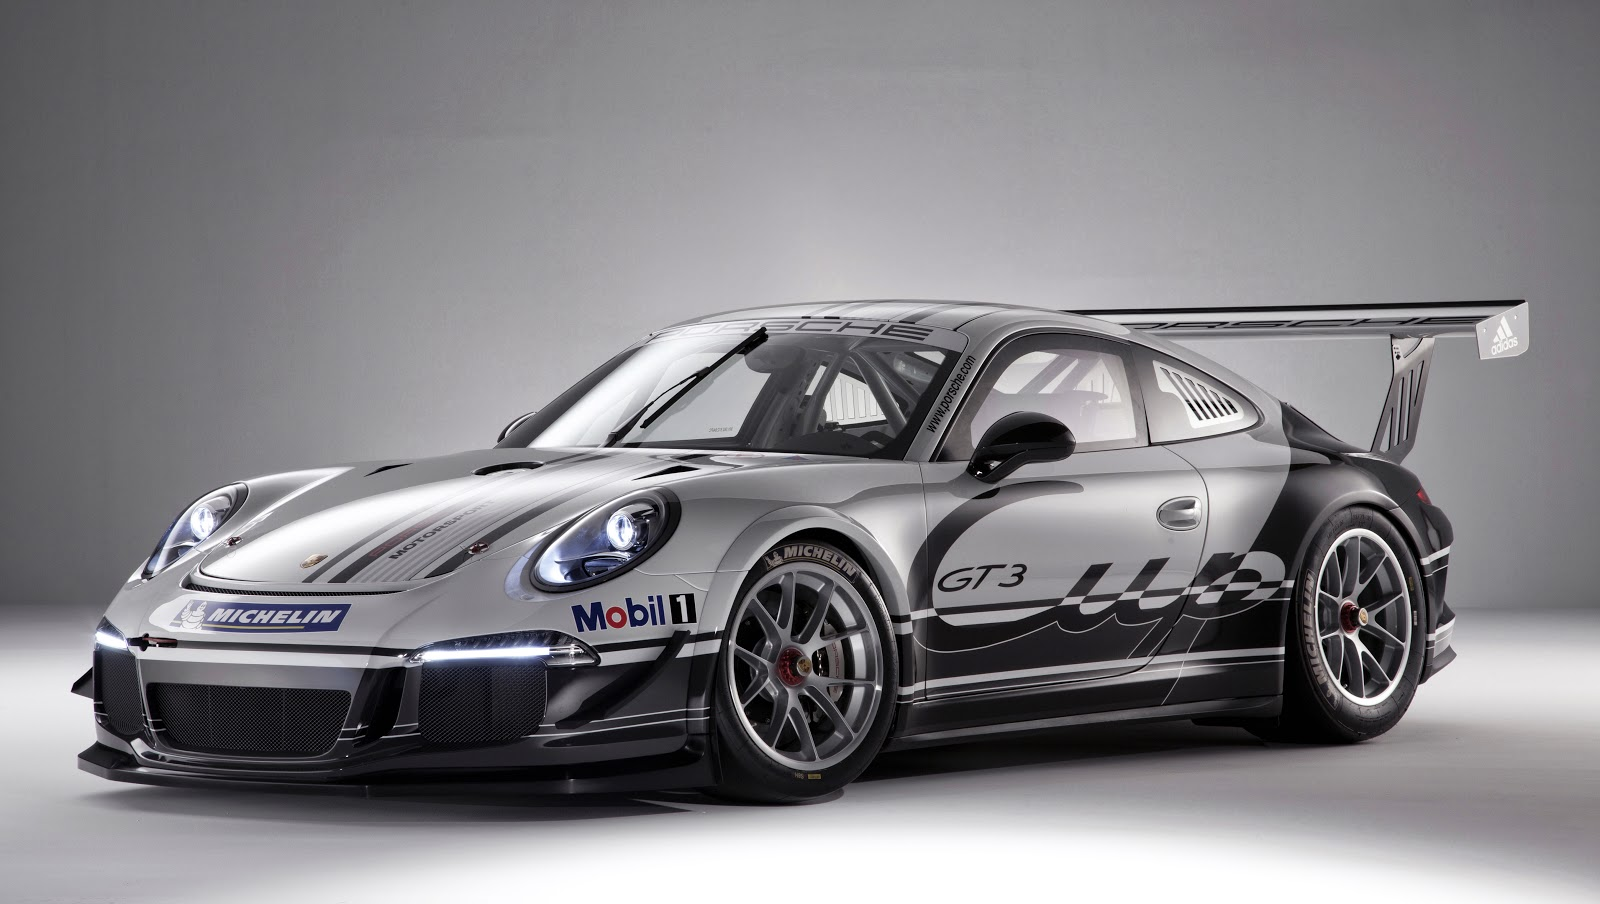 axis of oversteer 2013 porsche 991 gt3 cup. Black Bedroom Furniture Sets. Home Design Ideas